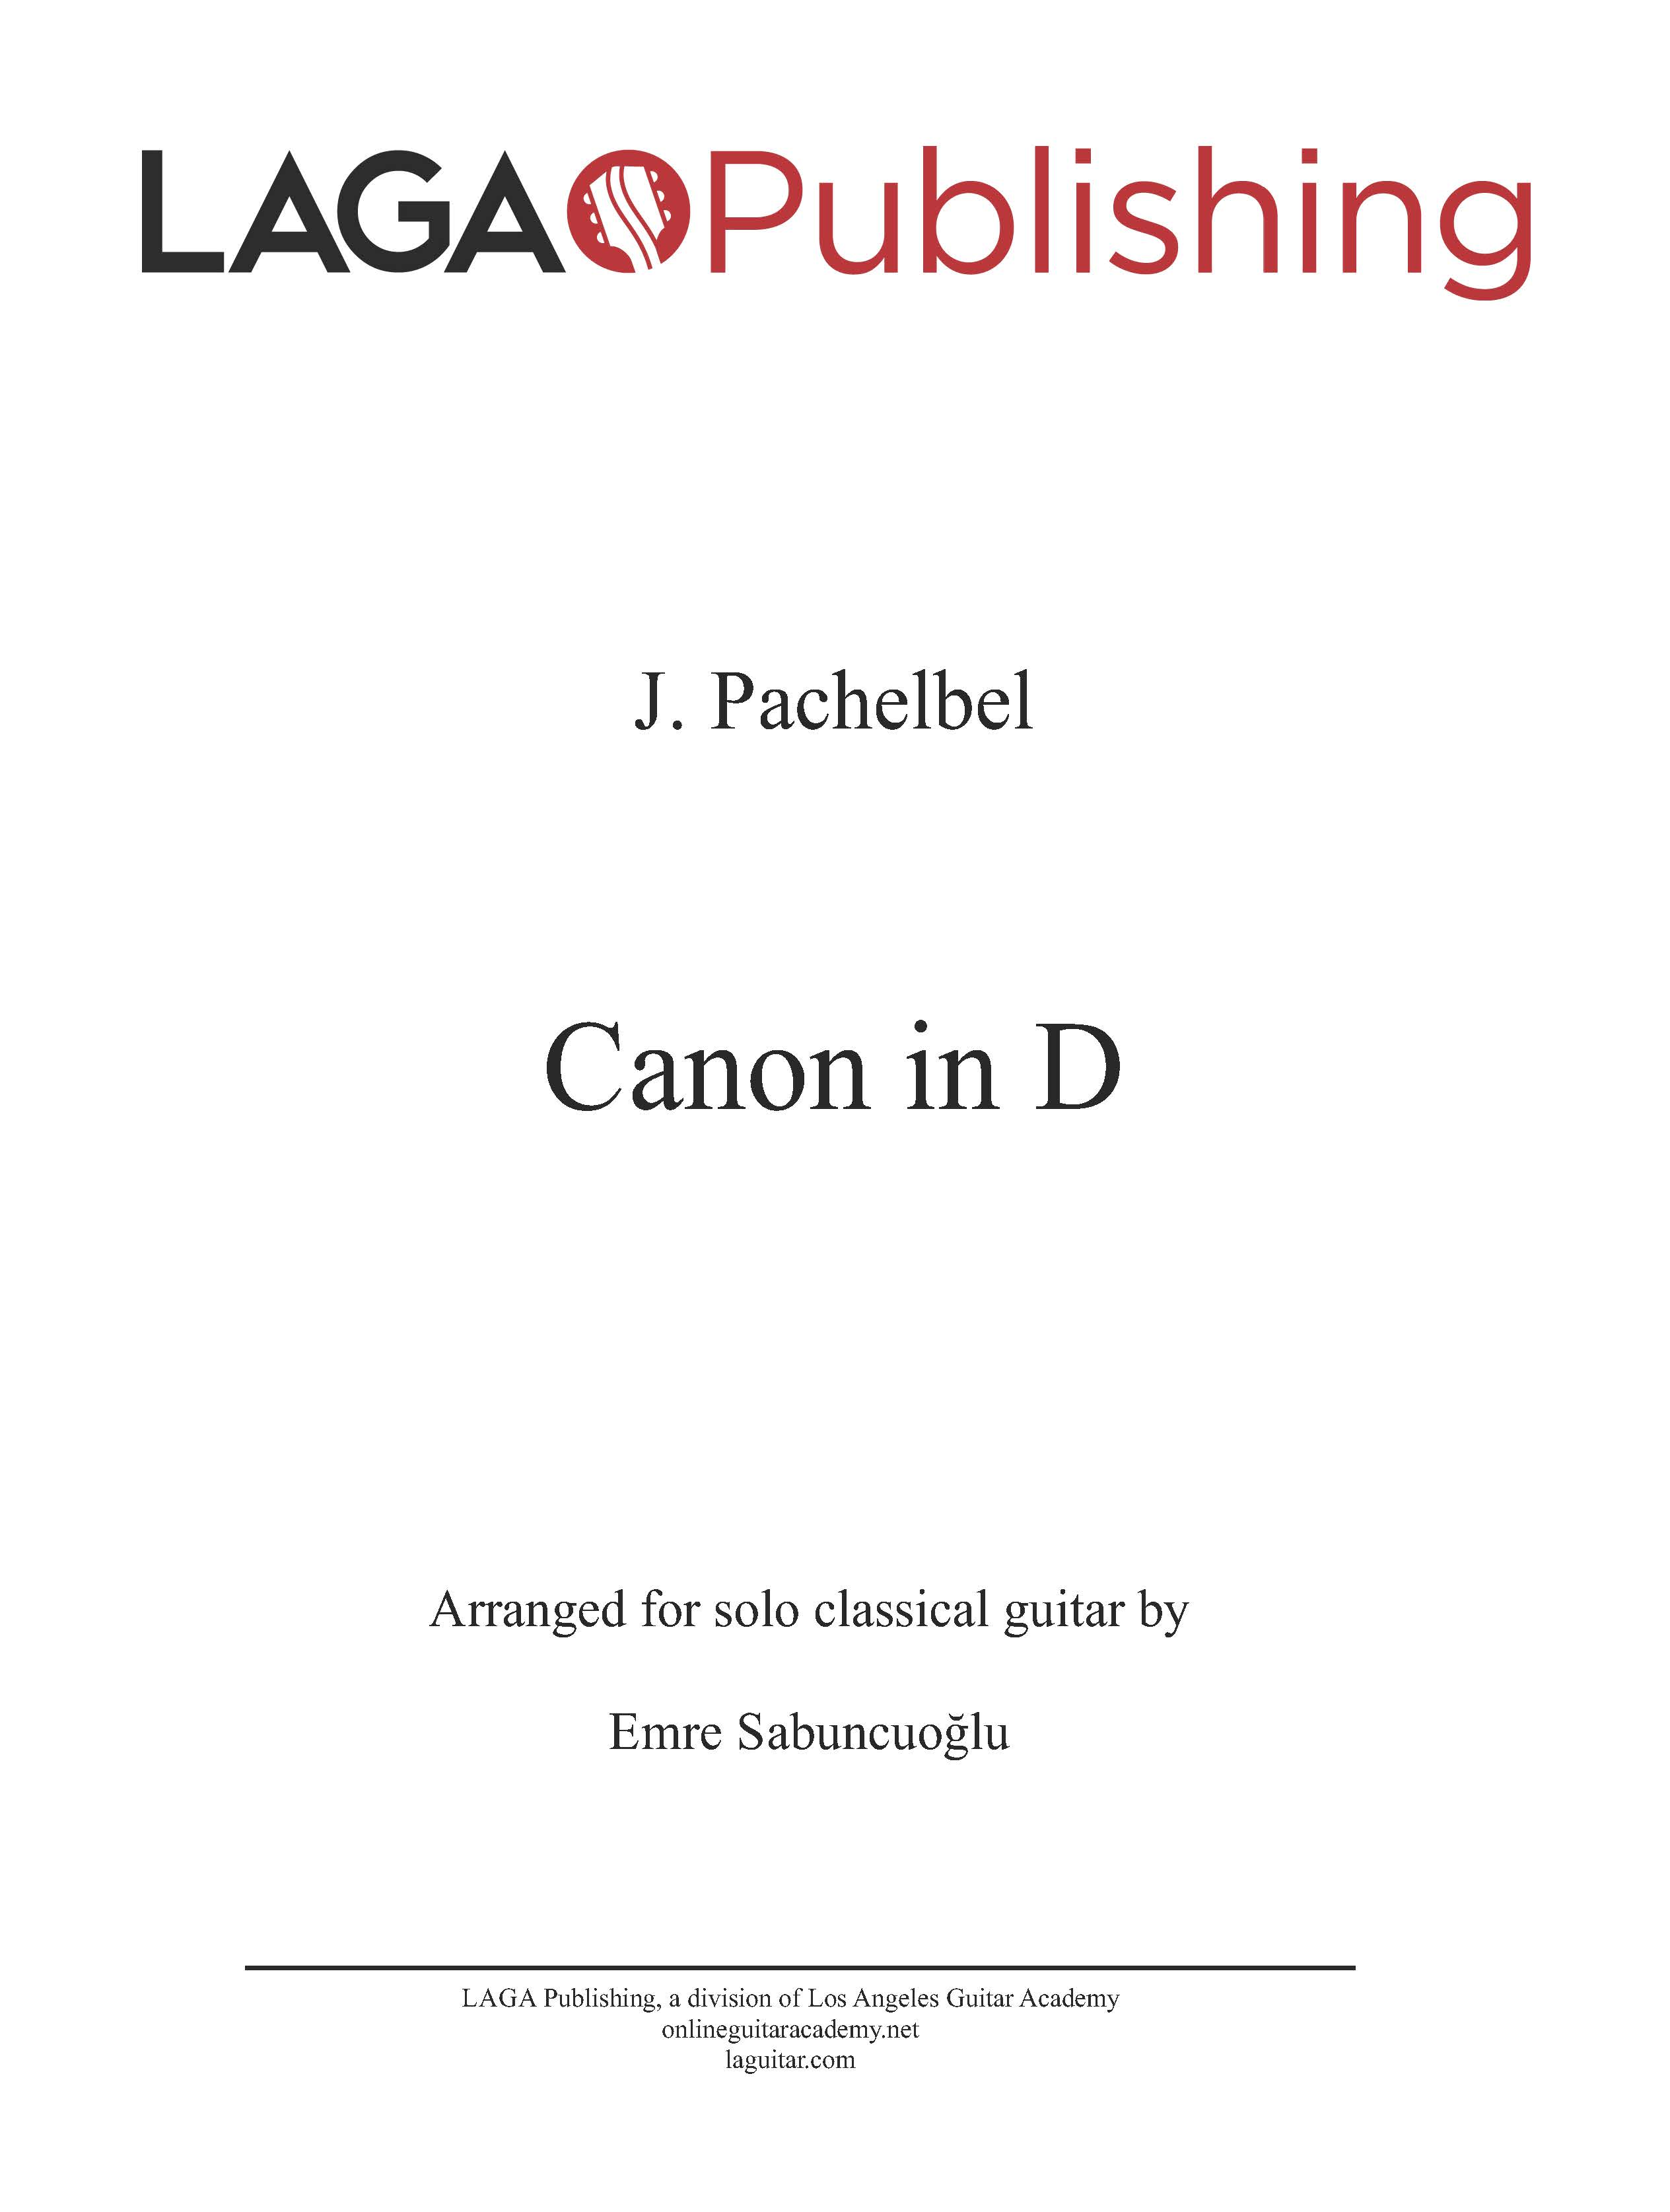 LAGA-Publishing-Pachelbel-Canon-Score-and-Tab